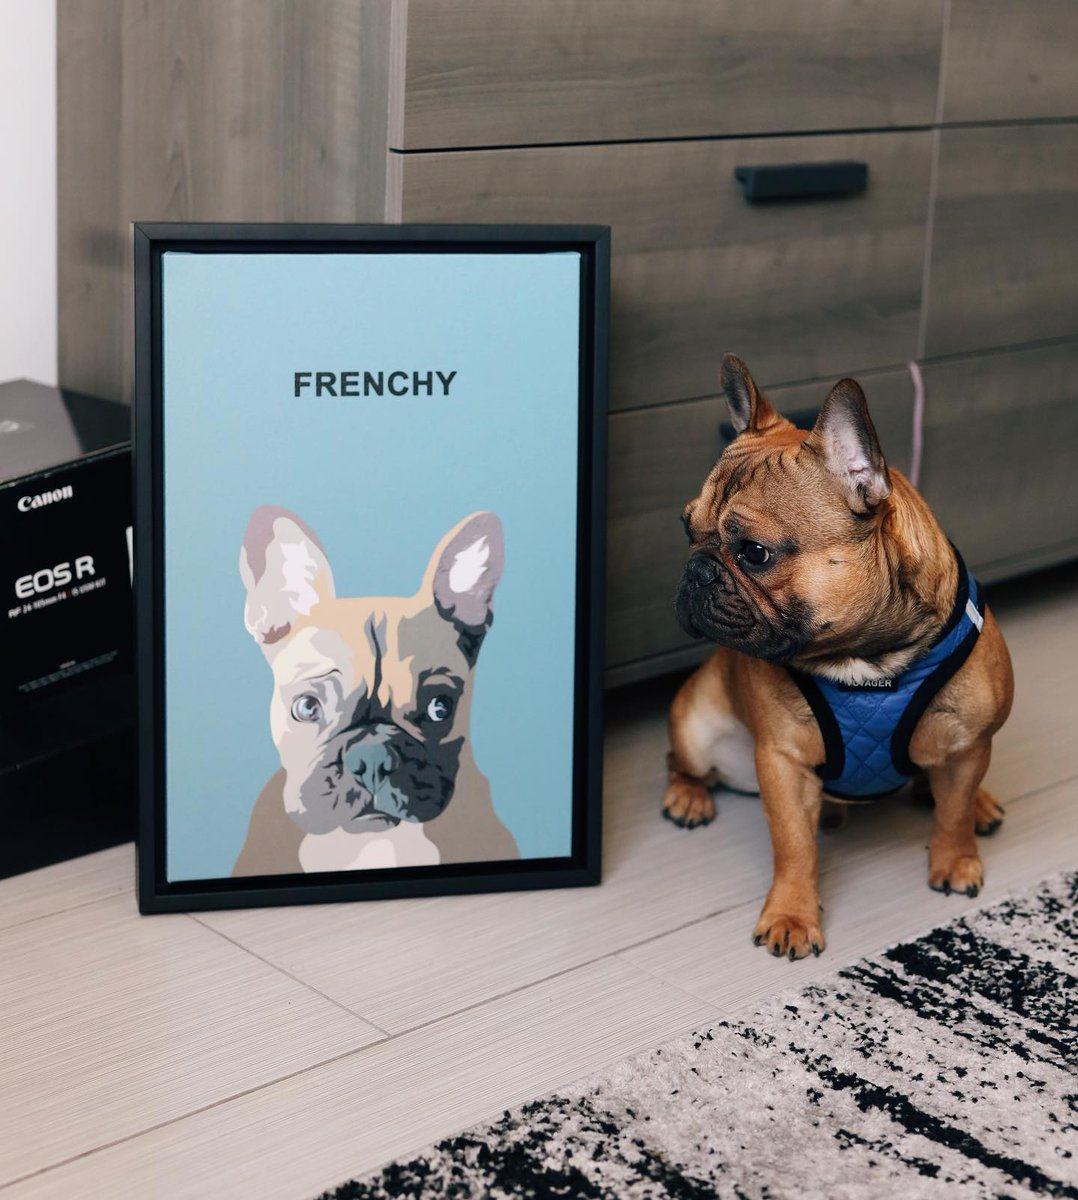 """Iconic Paw on Twitter: """"Frenchy keeping a close watch on her close up! 😍  Custom Illustrated Pet Portraits 📸 @kaicealea  You can have one of these  works of art made for"""